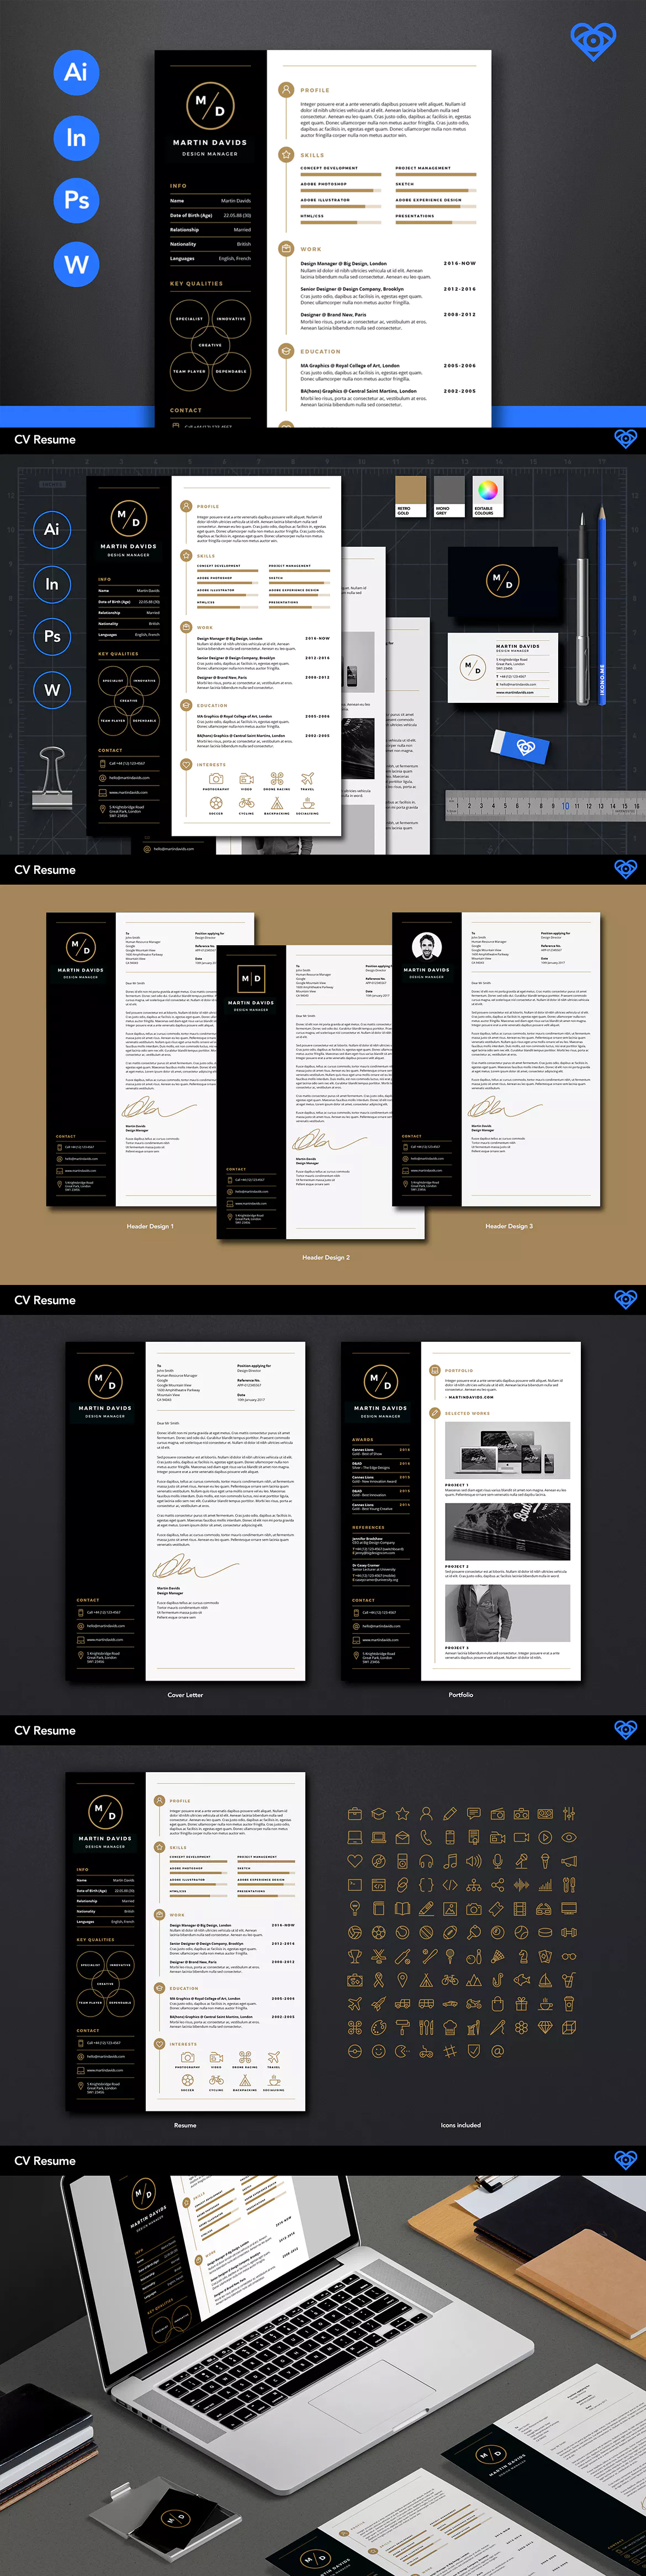 CV Resume Template AI, INDD, PSD, MS Word | Resume Templates ...